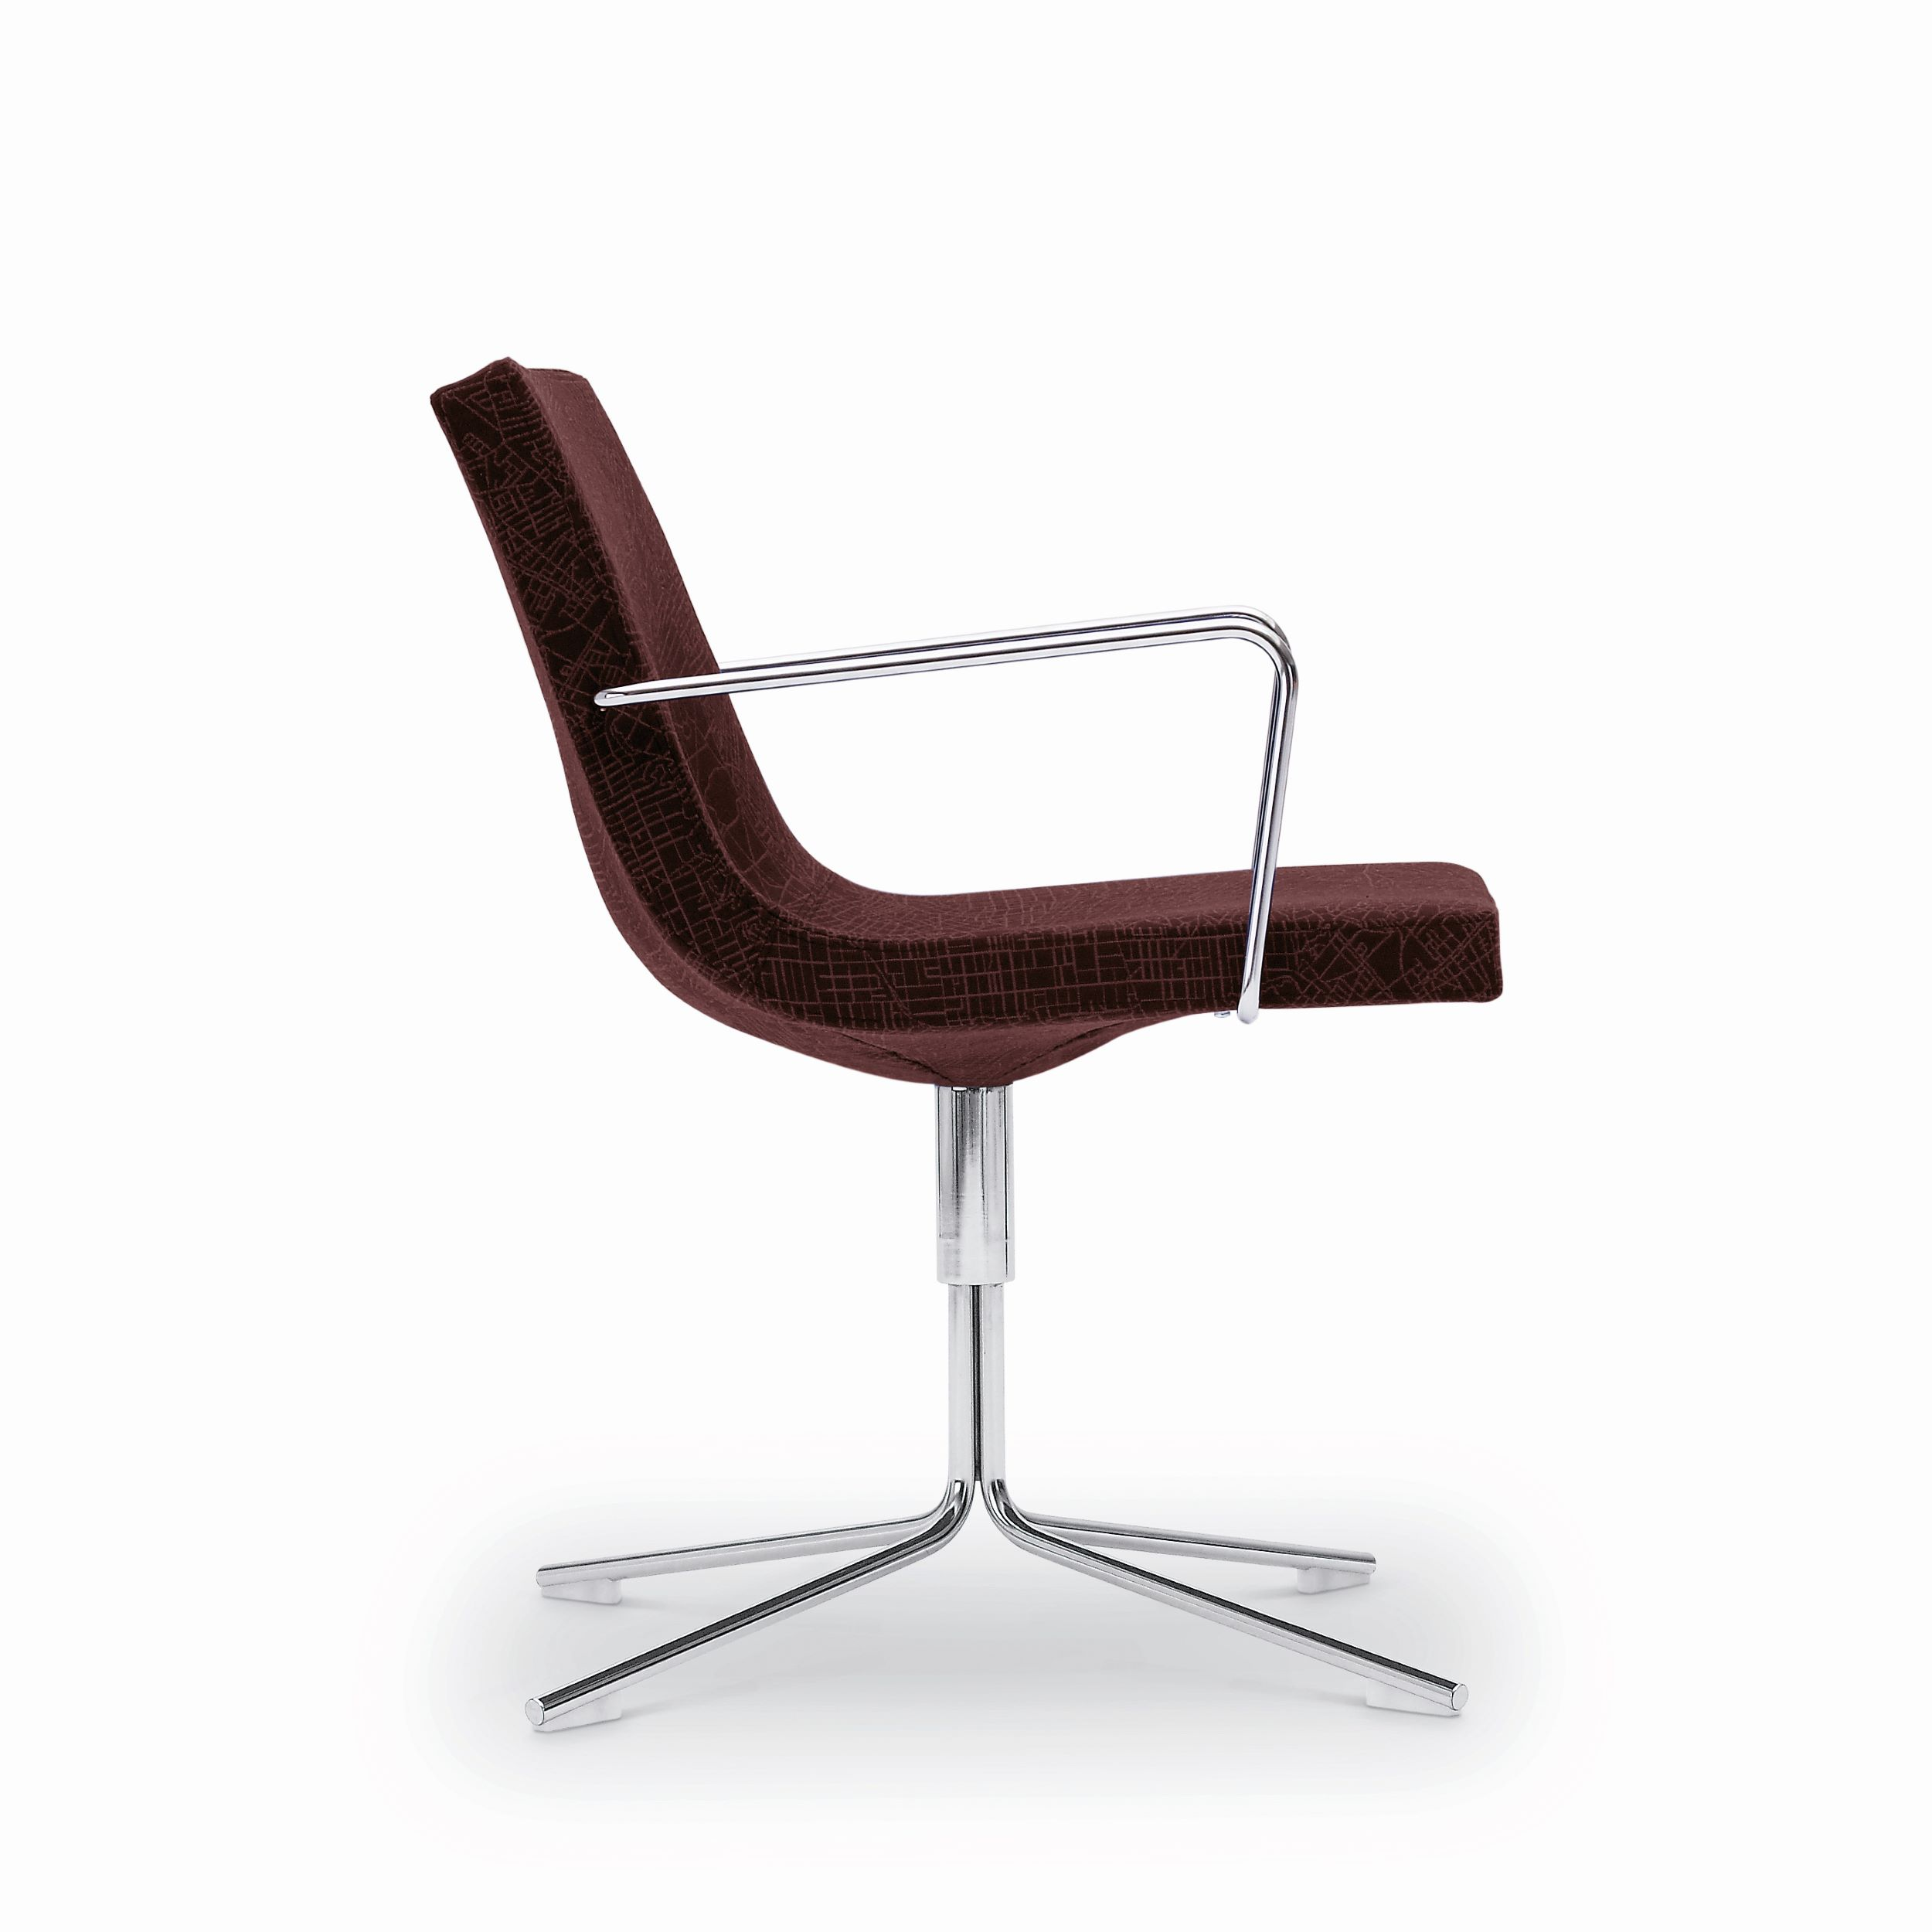 Chairs Browse Modern Functional And Comfortable Options Offecct